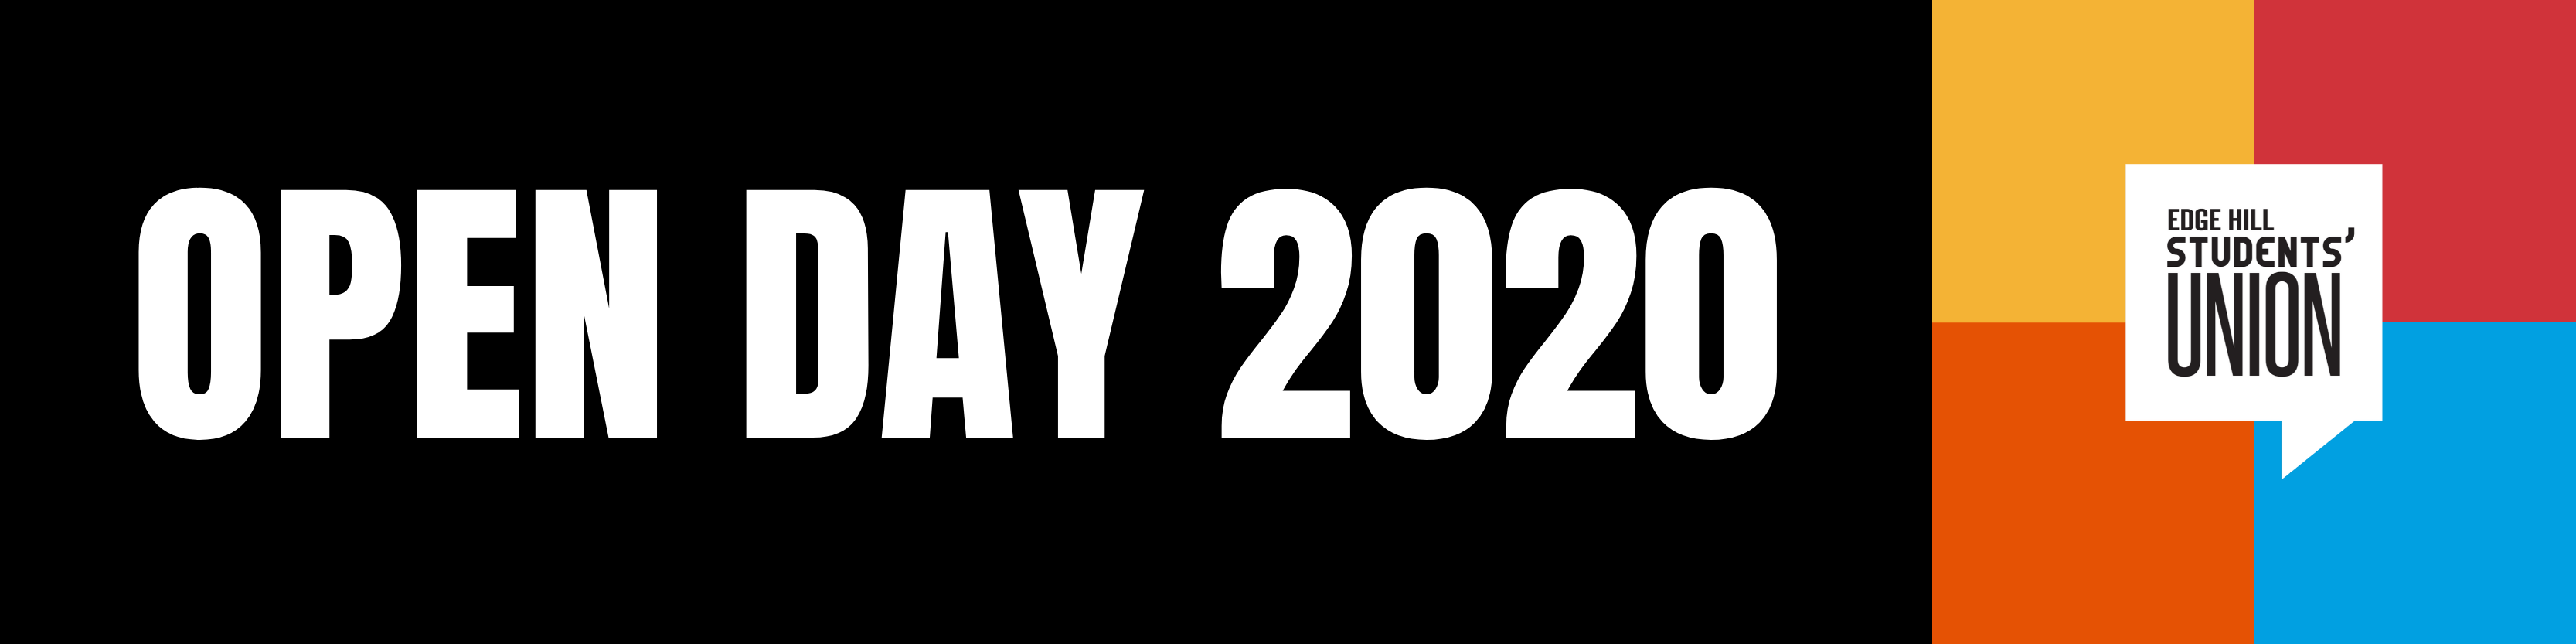 Web Banner: Open Day 2020